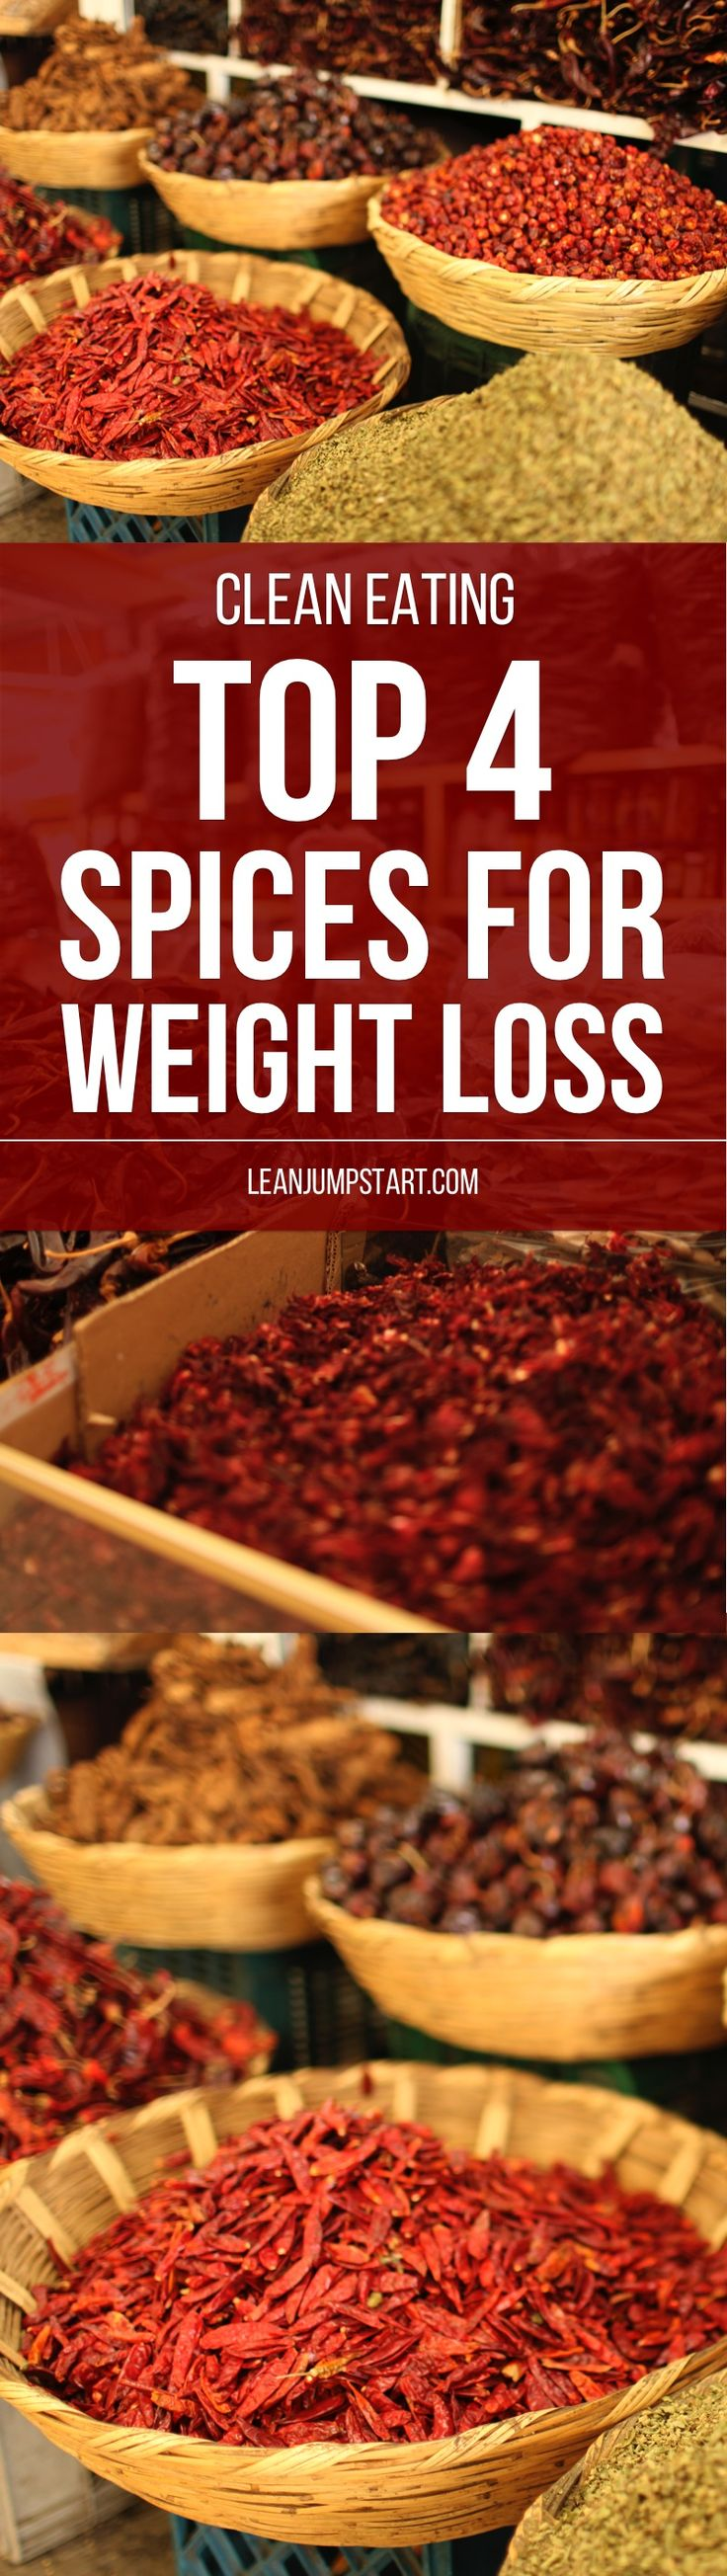 Best 25+ Spices for weightloss ideas on Pinterest | Weight loss ...